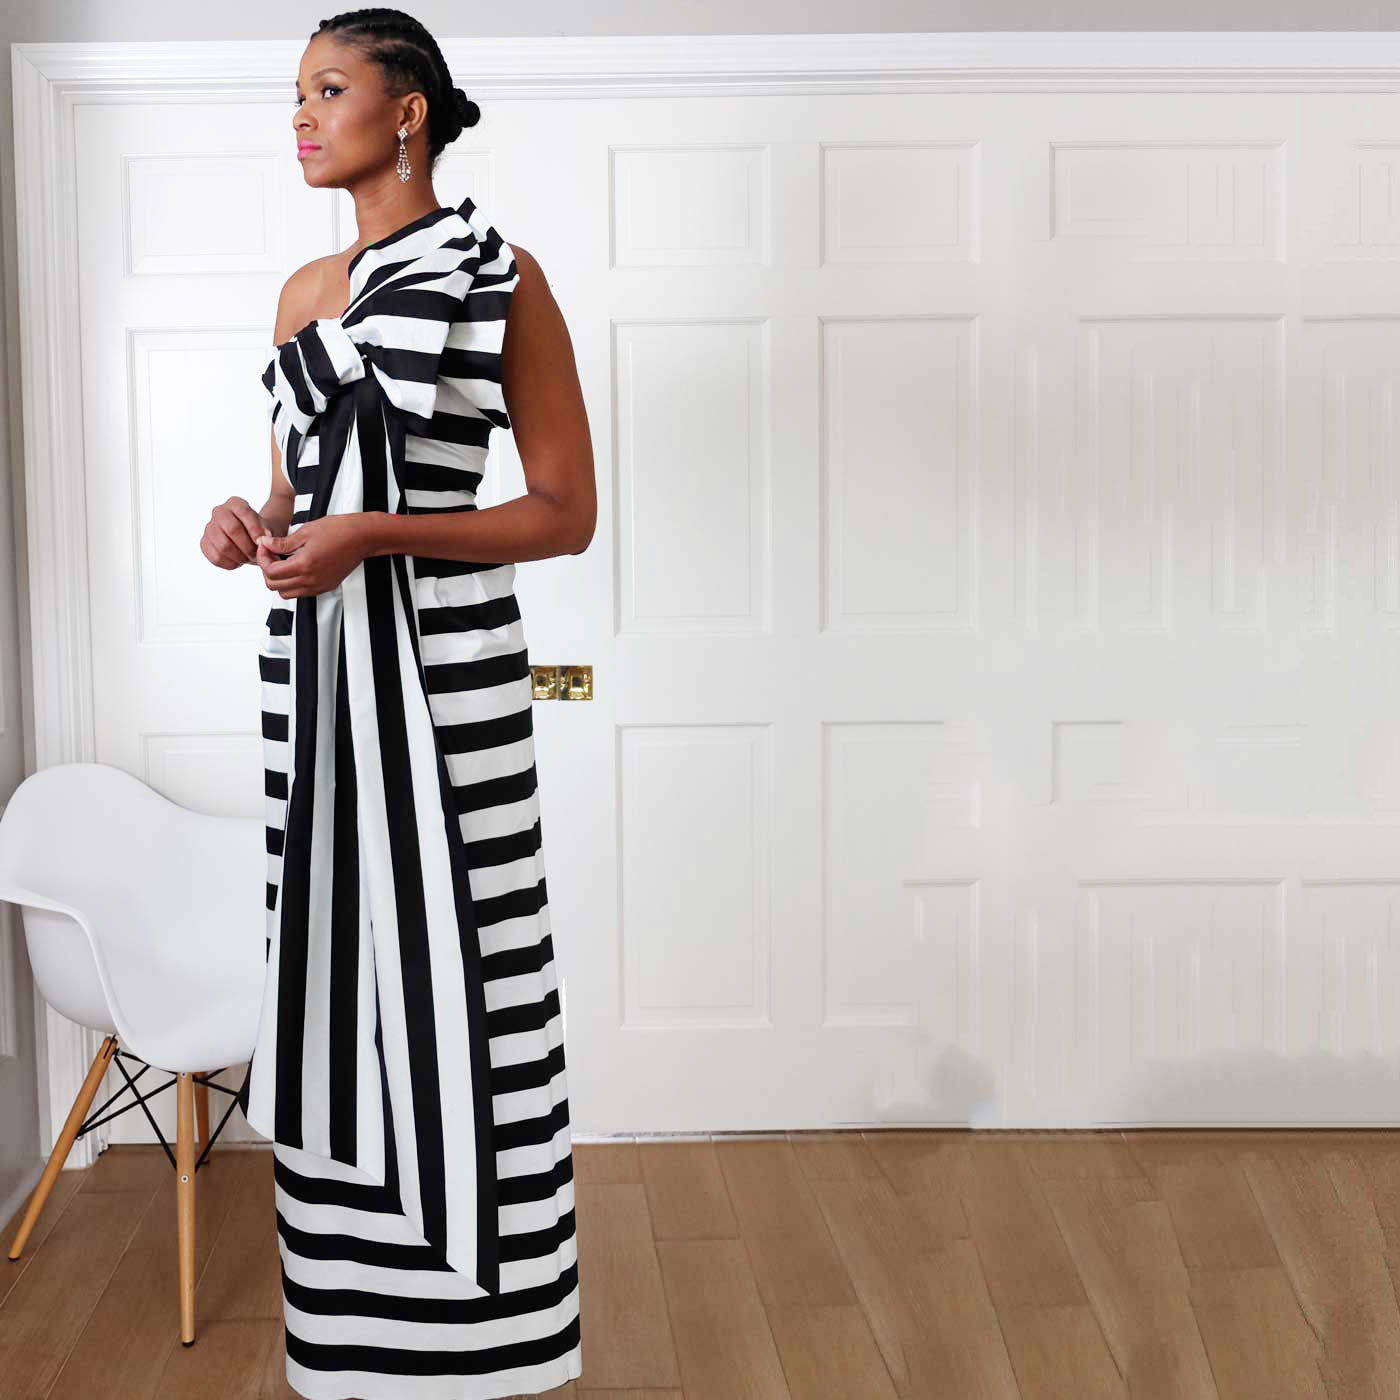 Bows & Stripes Gown